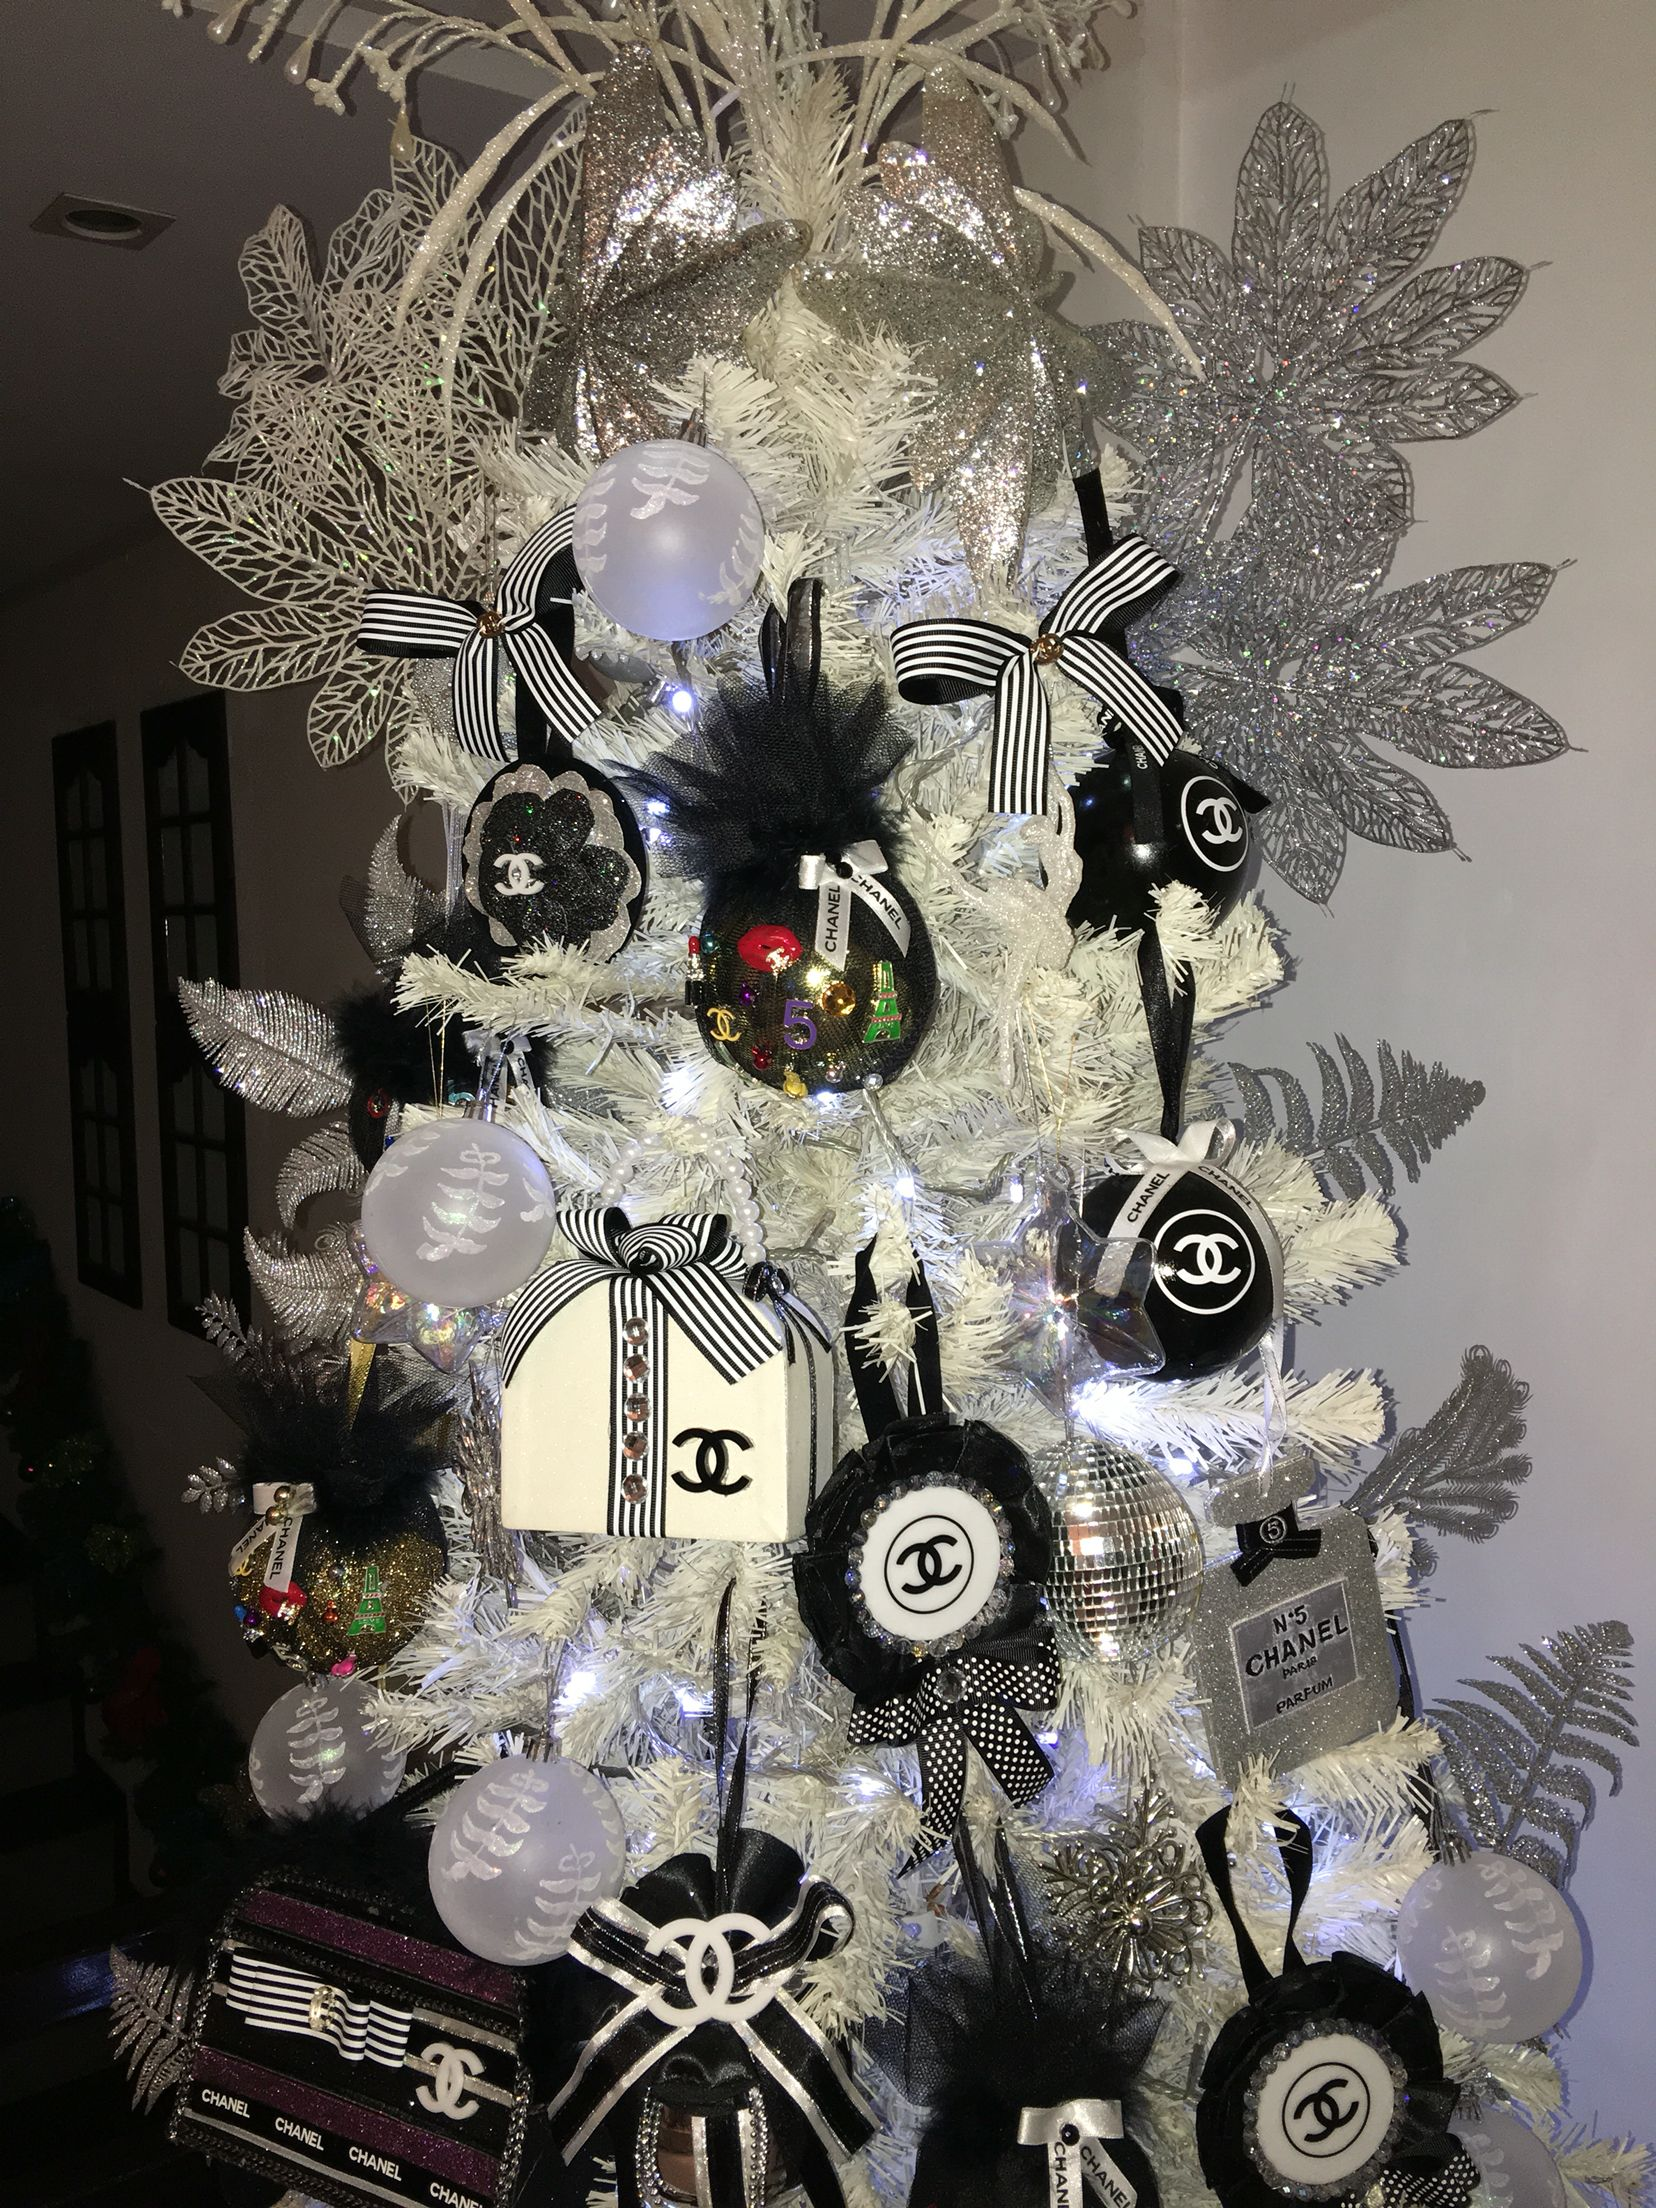 Chanel Christmas Ornaments.Chanel Ornaments Chanel Christmas Tree Elegant Christmas